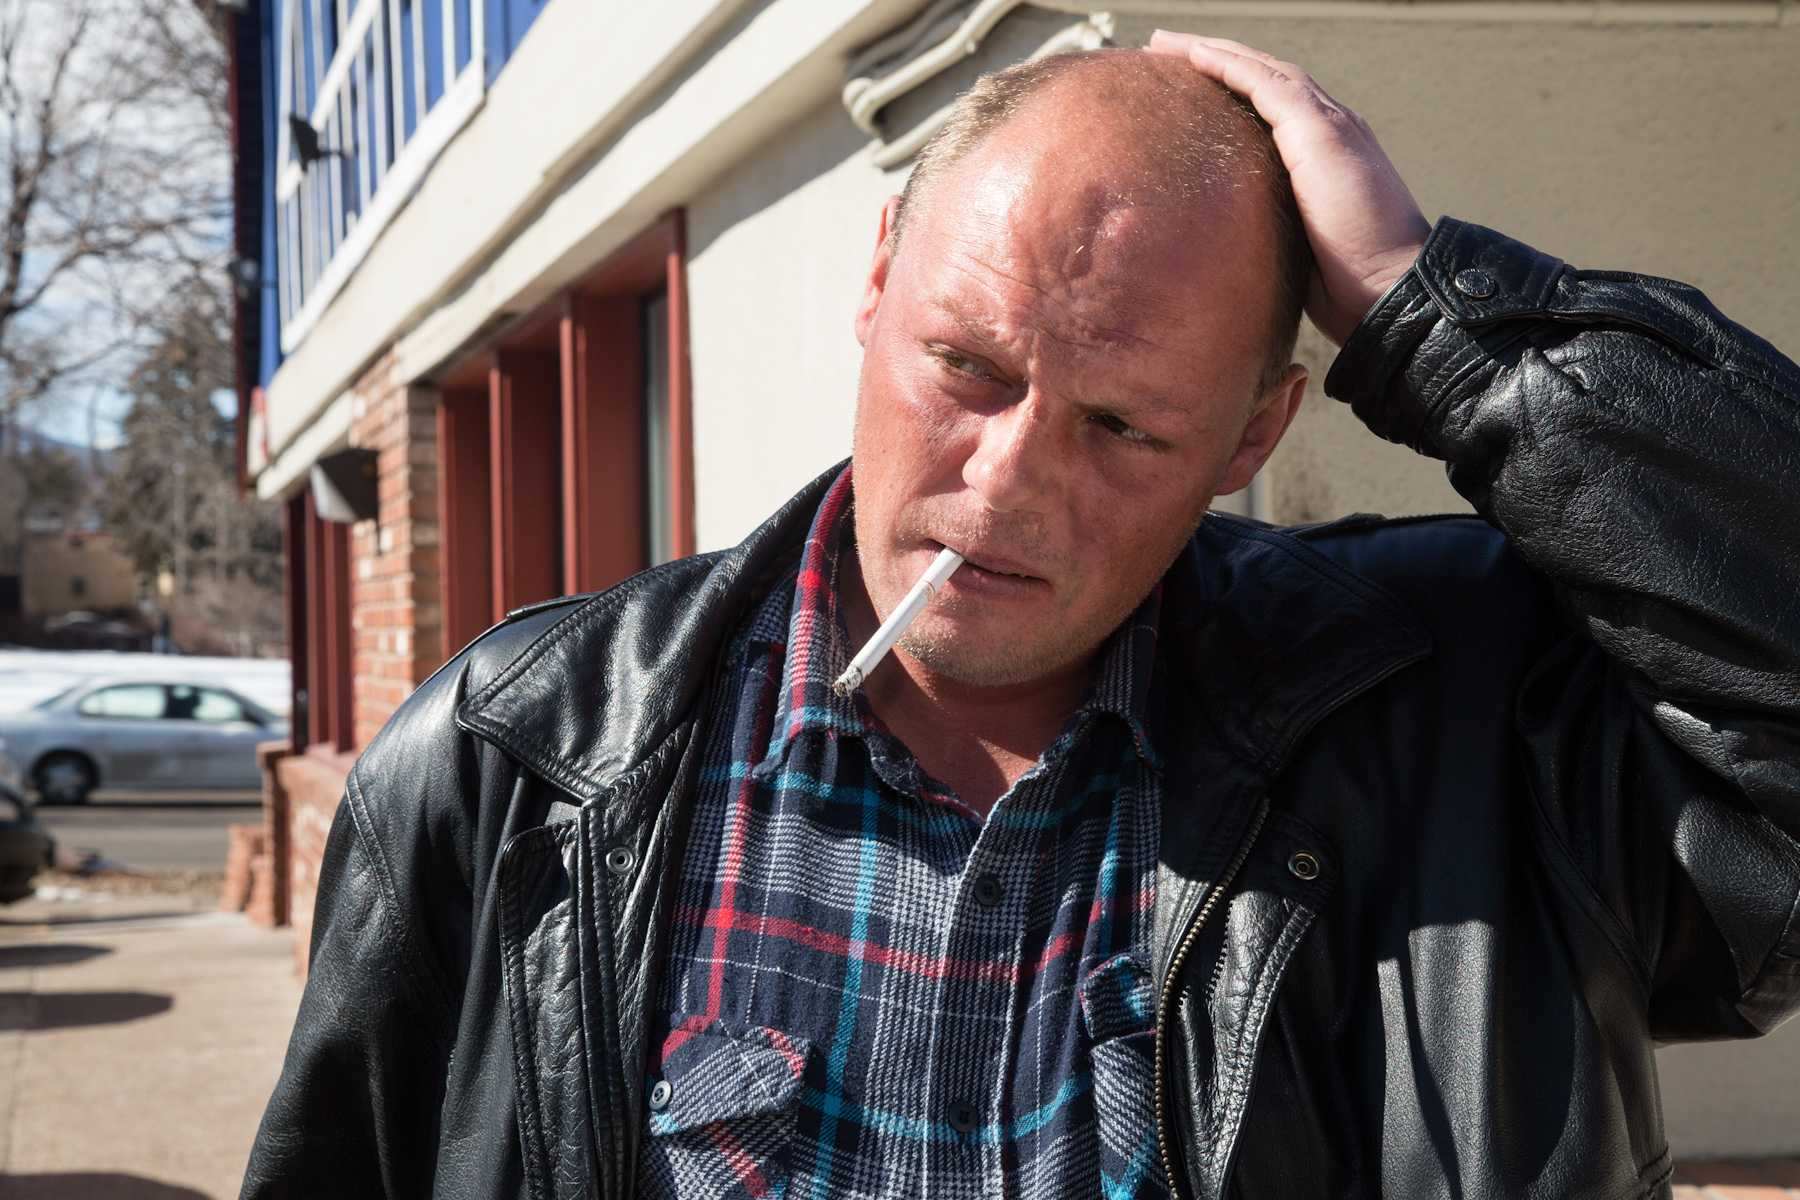 Fort Collins resident Todd Smith smokes a cigarette ouside of IHOP on College Ave. Wednesday. Smith has been a regualr to IHOP for the past 10 years, spending his days of sipping coffee and reading.